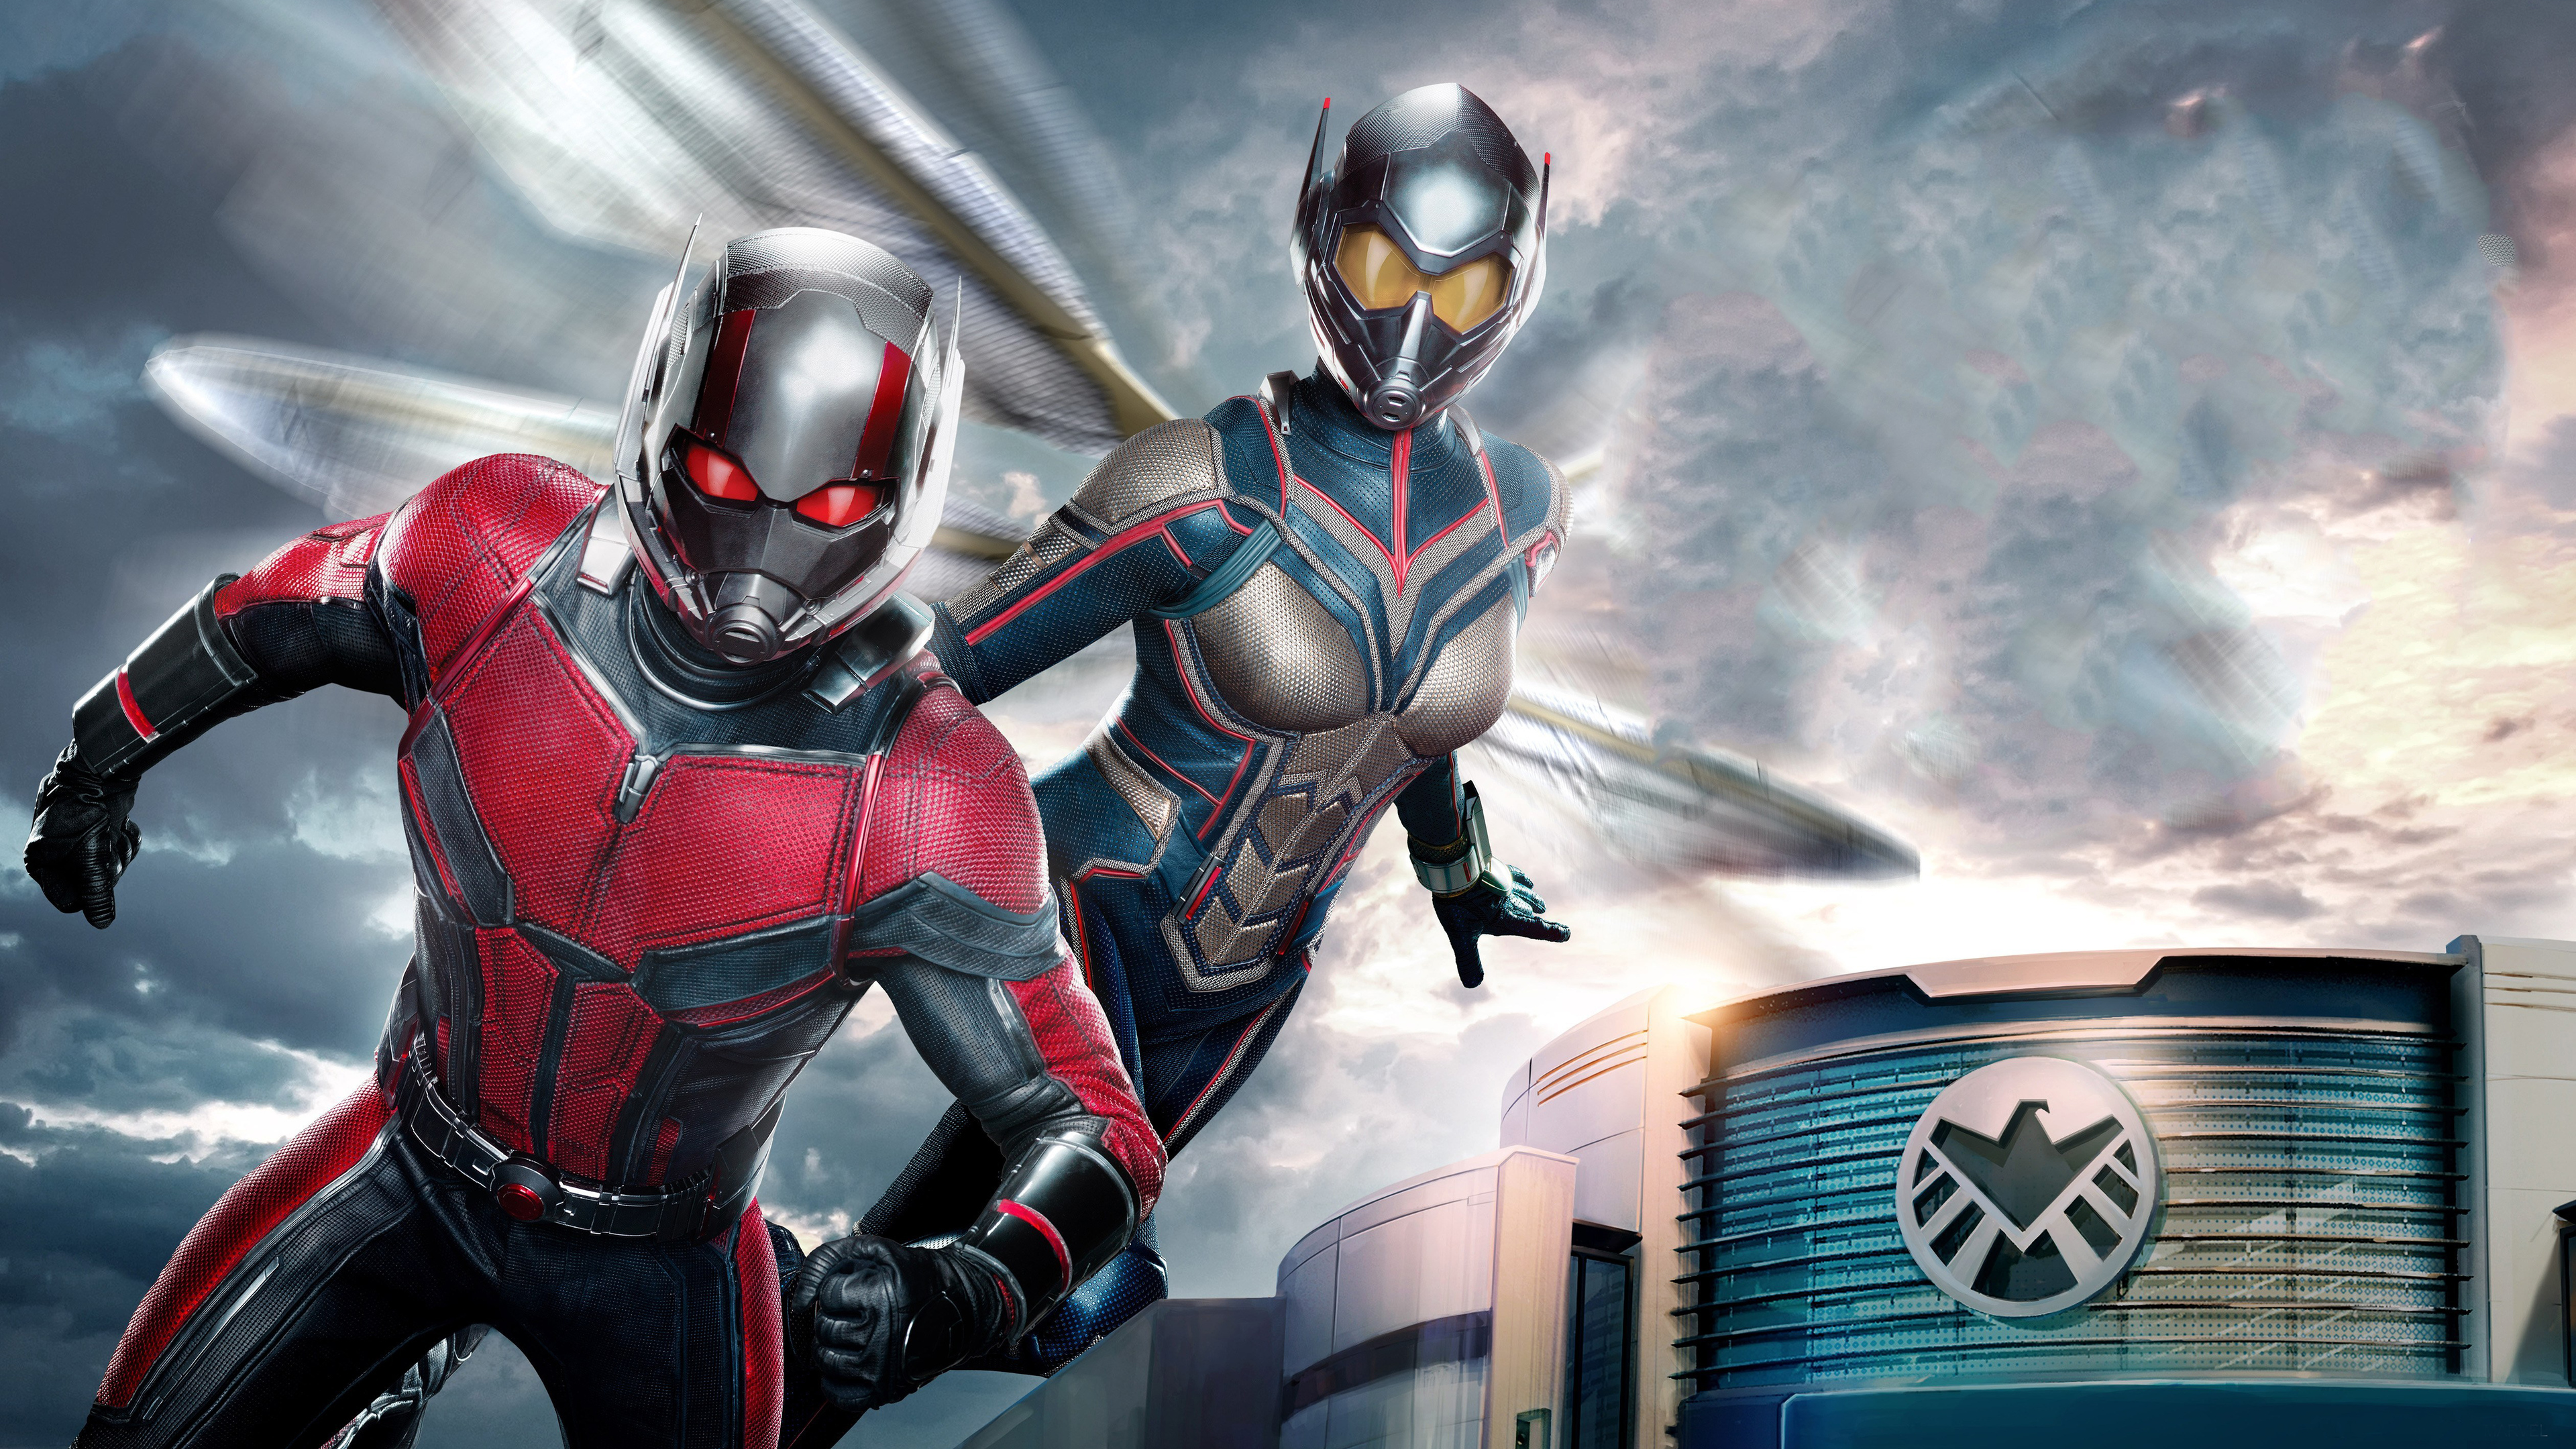 ant man and the wasp 4k 1558220086 - Ant Man And The Wasp 4k - poster wallpapers, movies wallpapers, hd-wallpapers, ant man wallpapers, ant man and the wasp wallpapers, 4k-wallpapers, 2018-movies-wallpapers